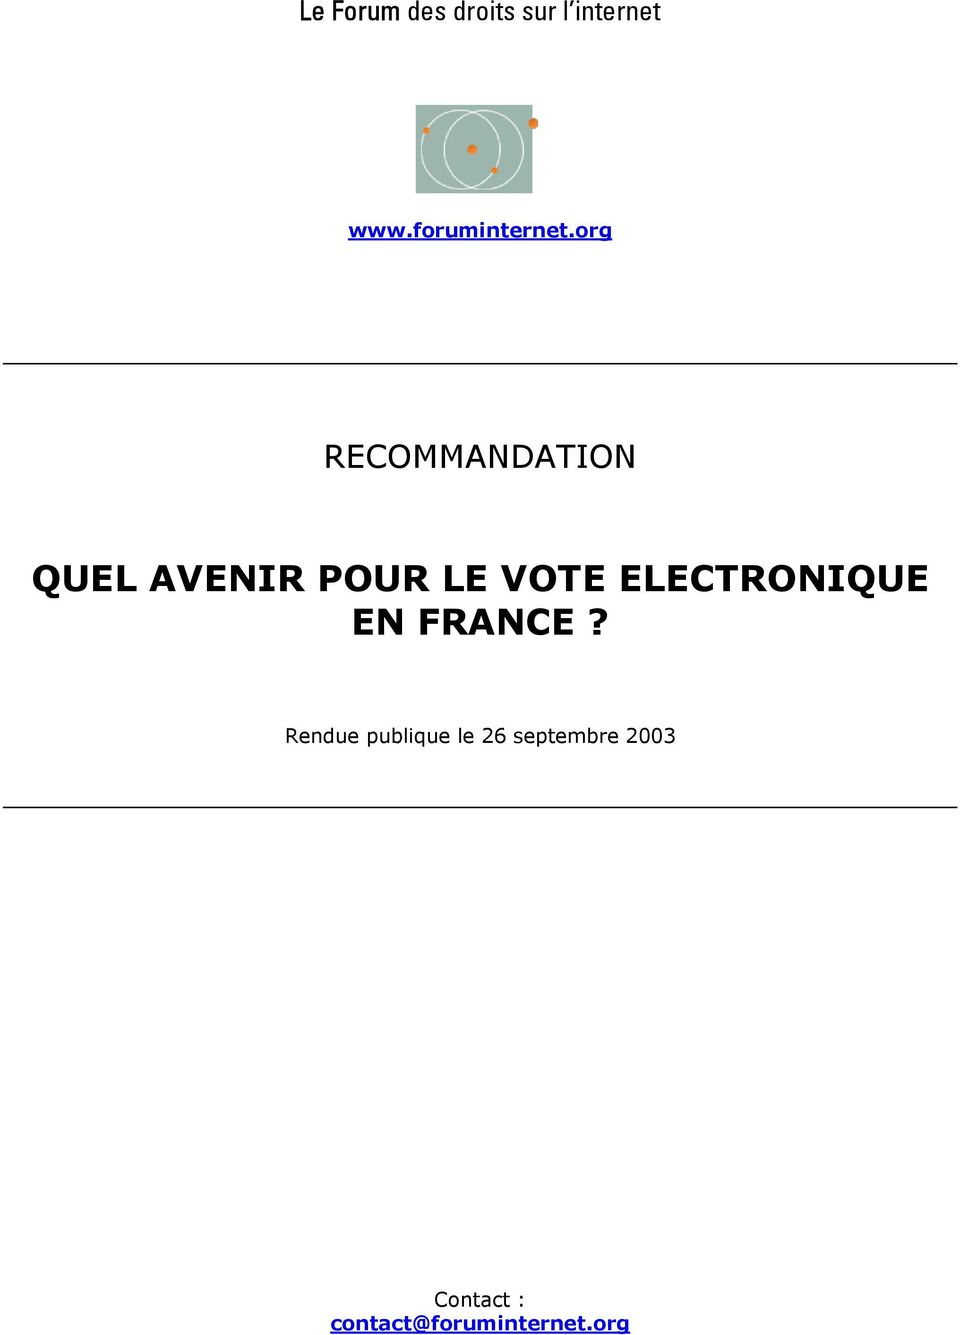 VOTE ELECTRONIQUE EN FRANCE?